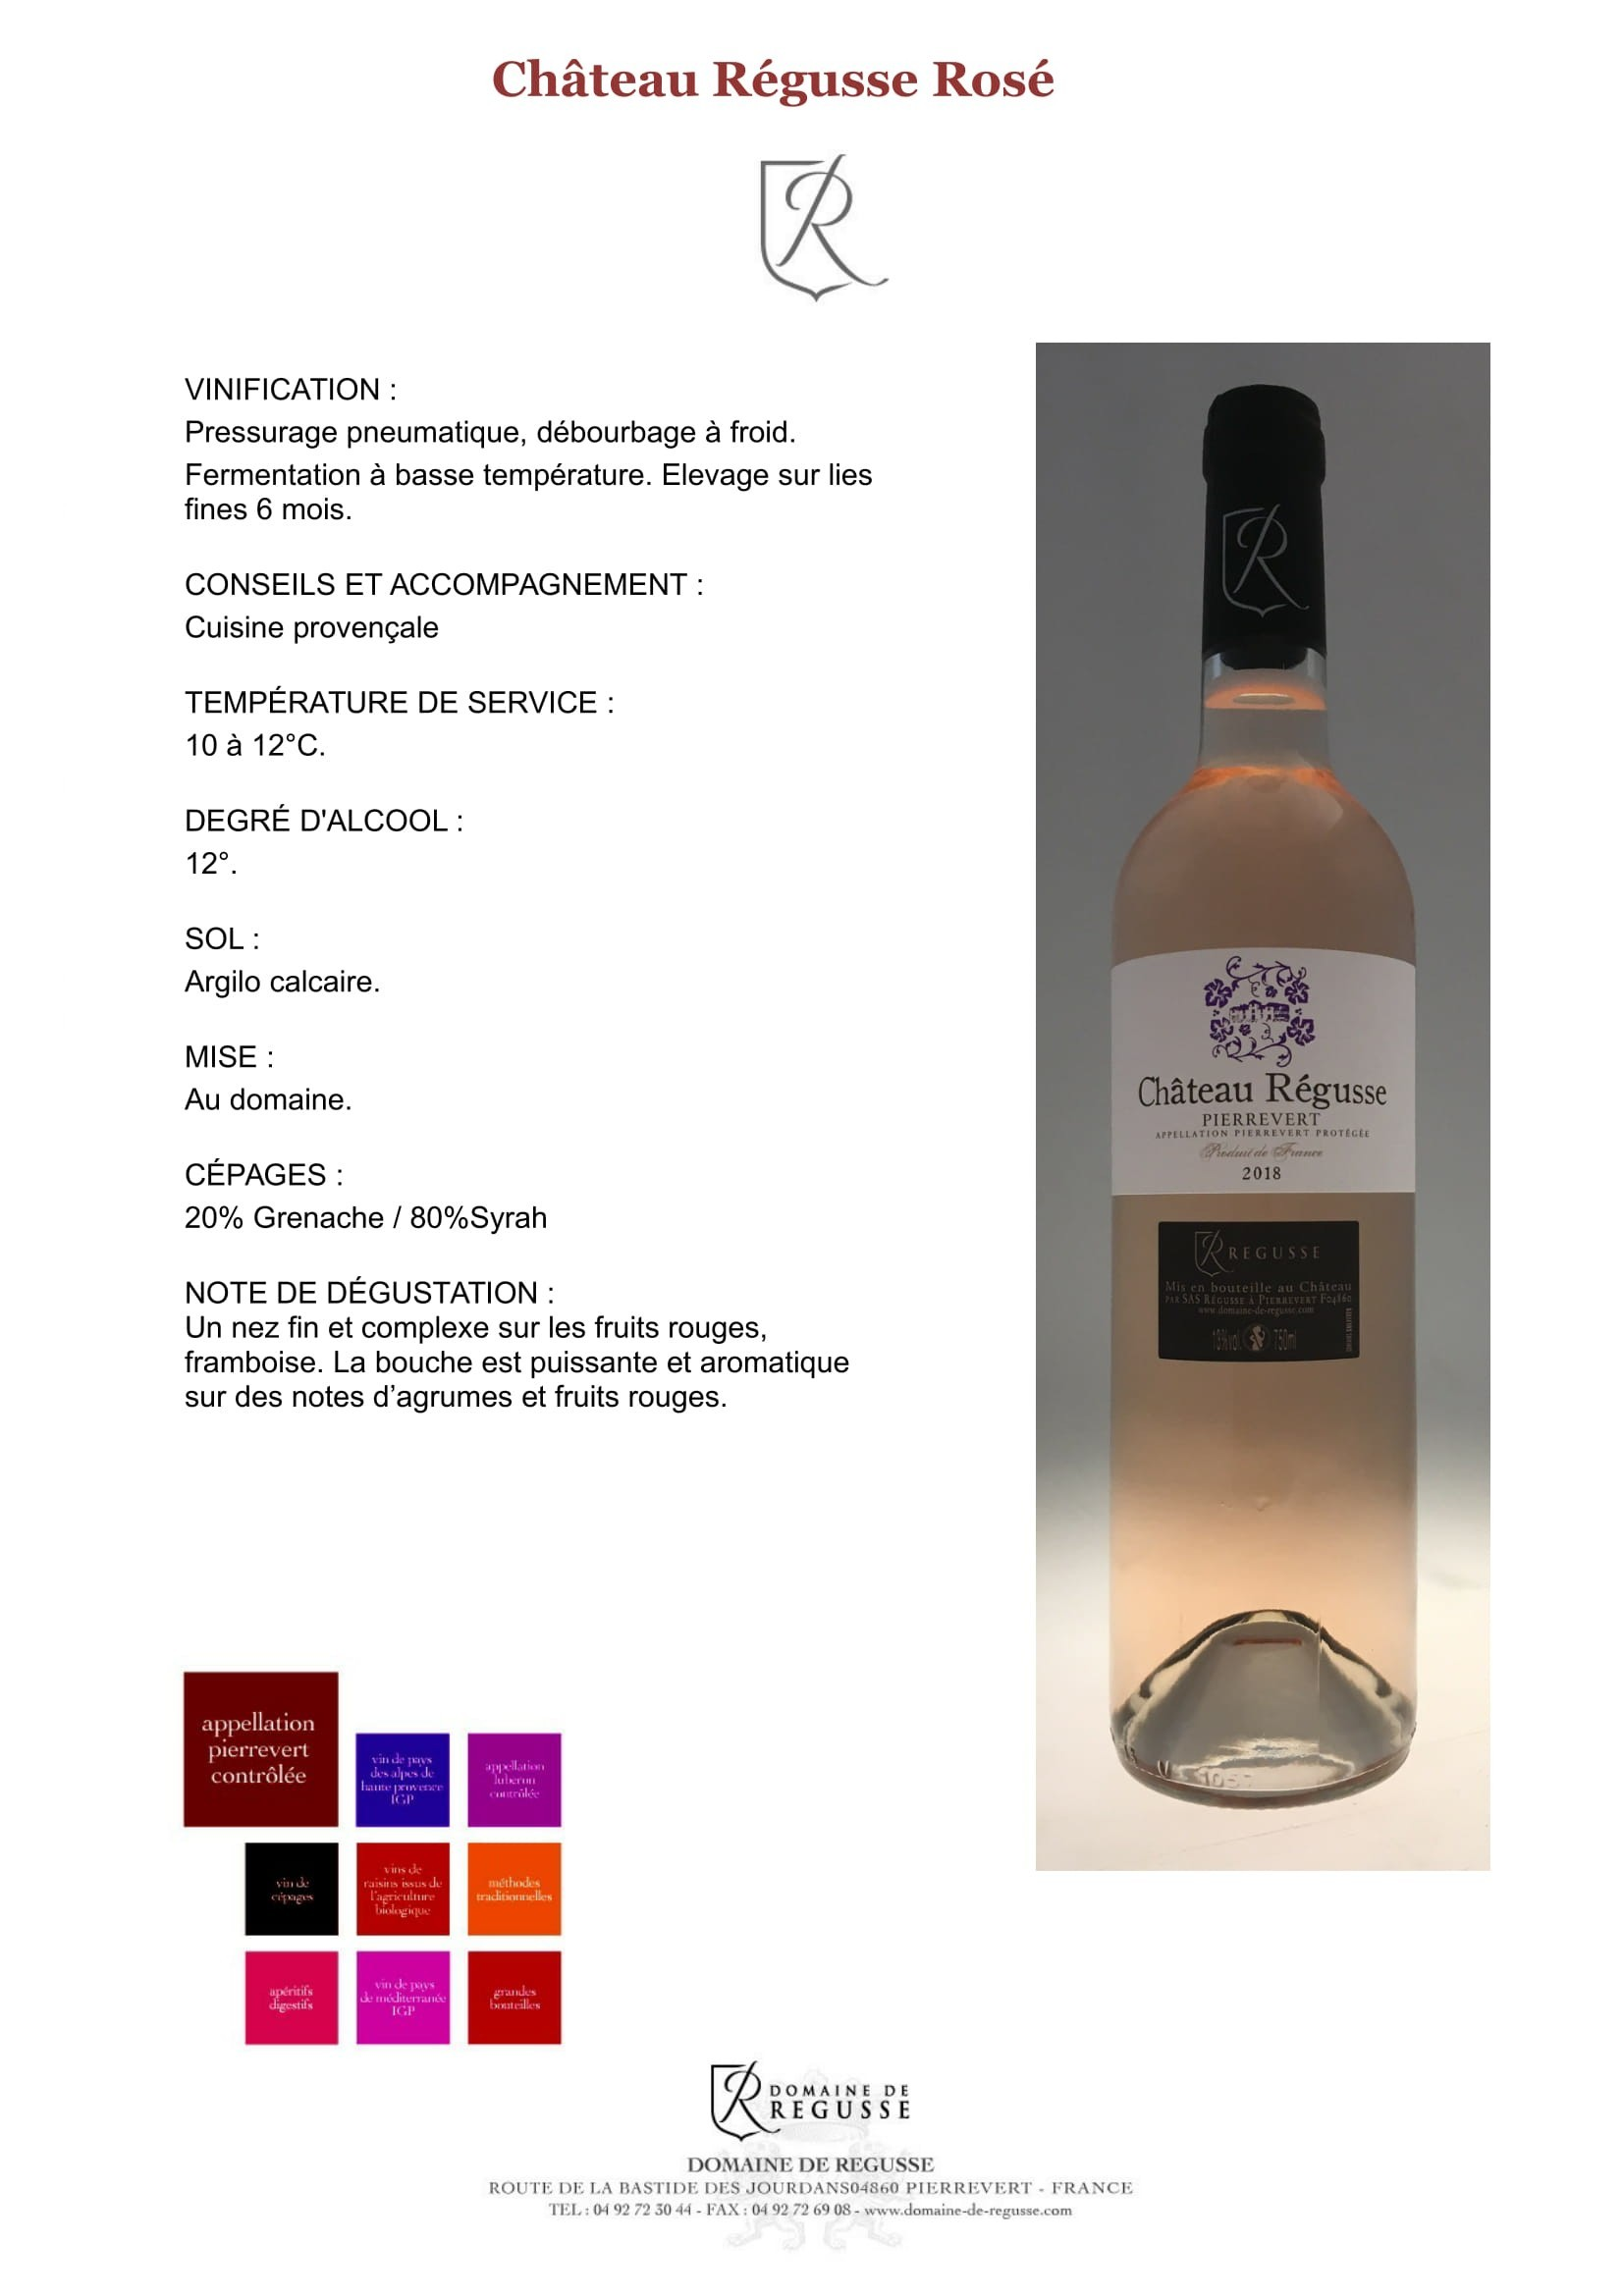 Chateau regusse rose ok